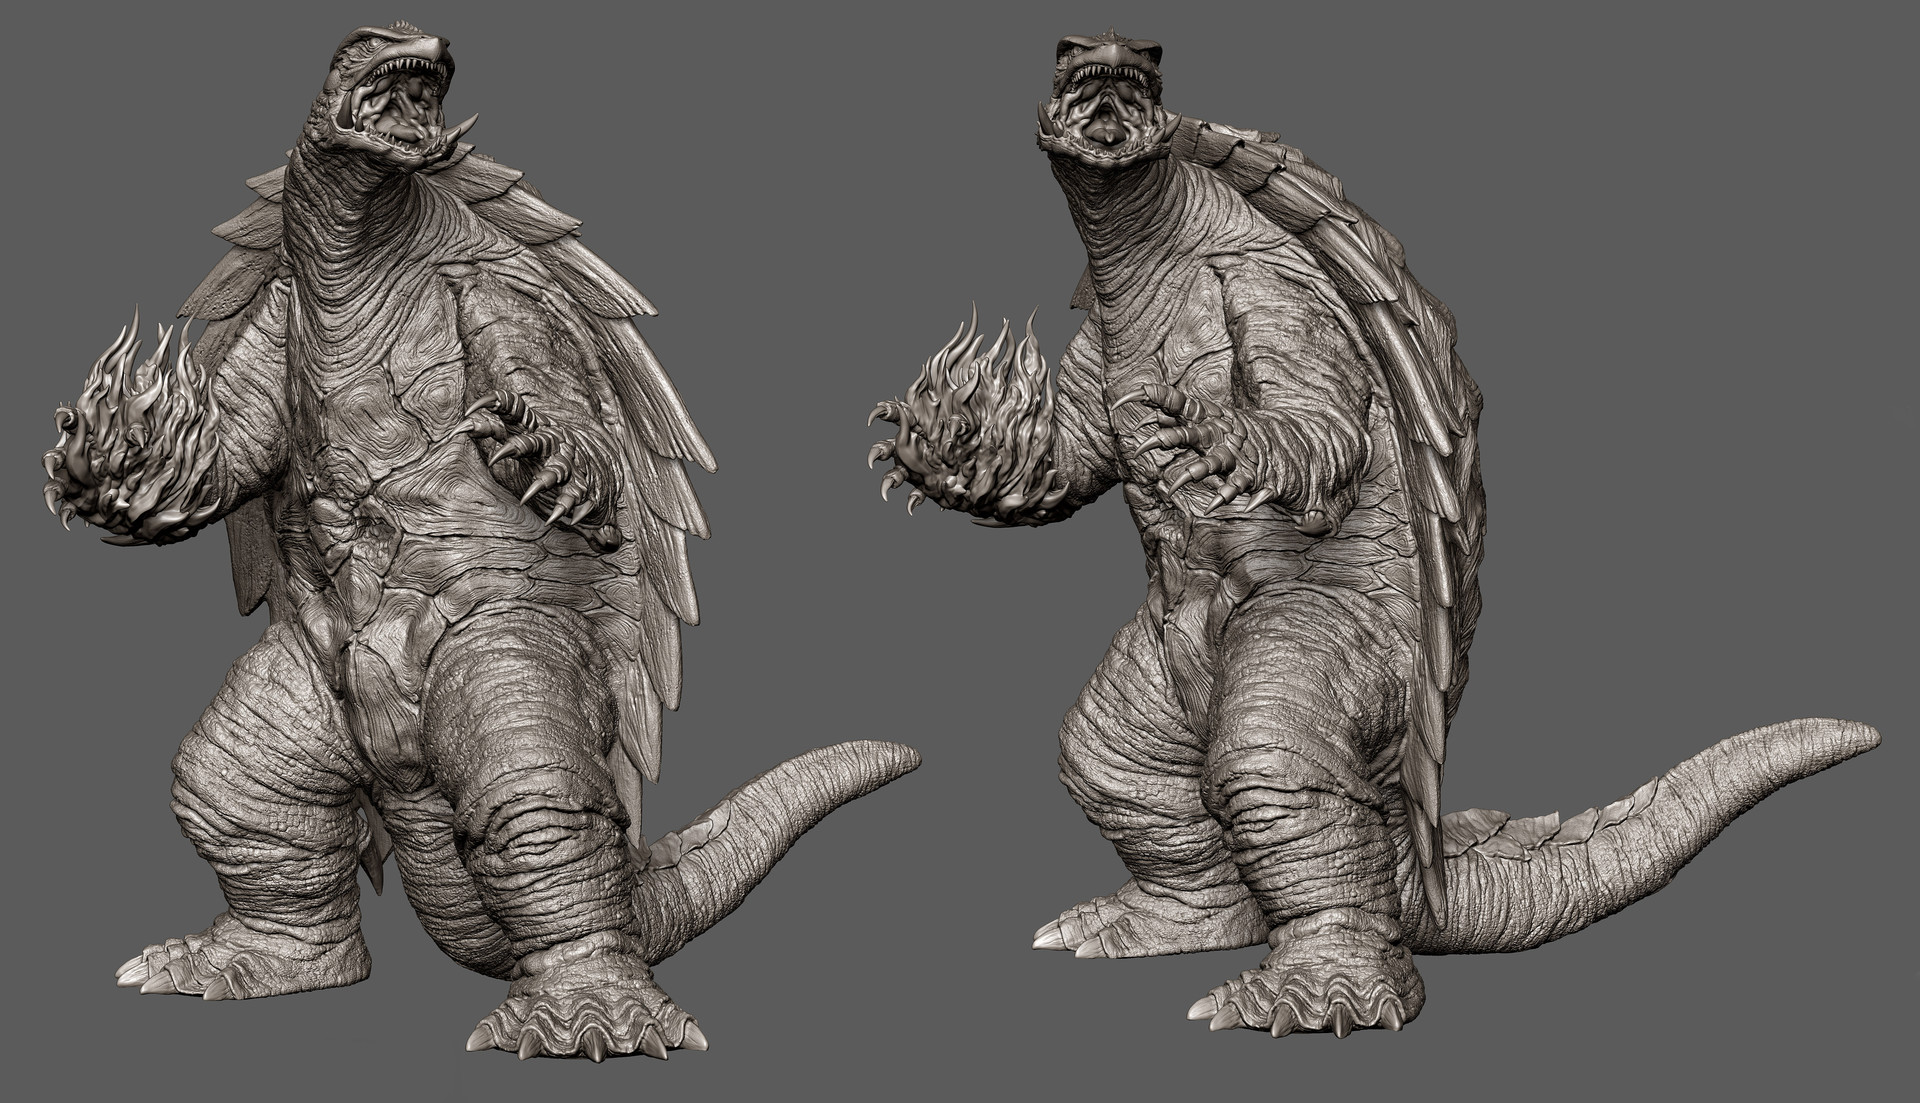 Jesse sandifer gamera 2ba